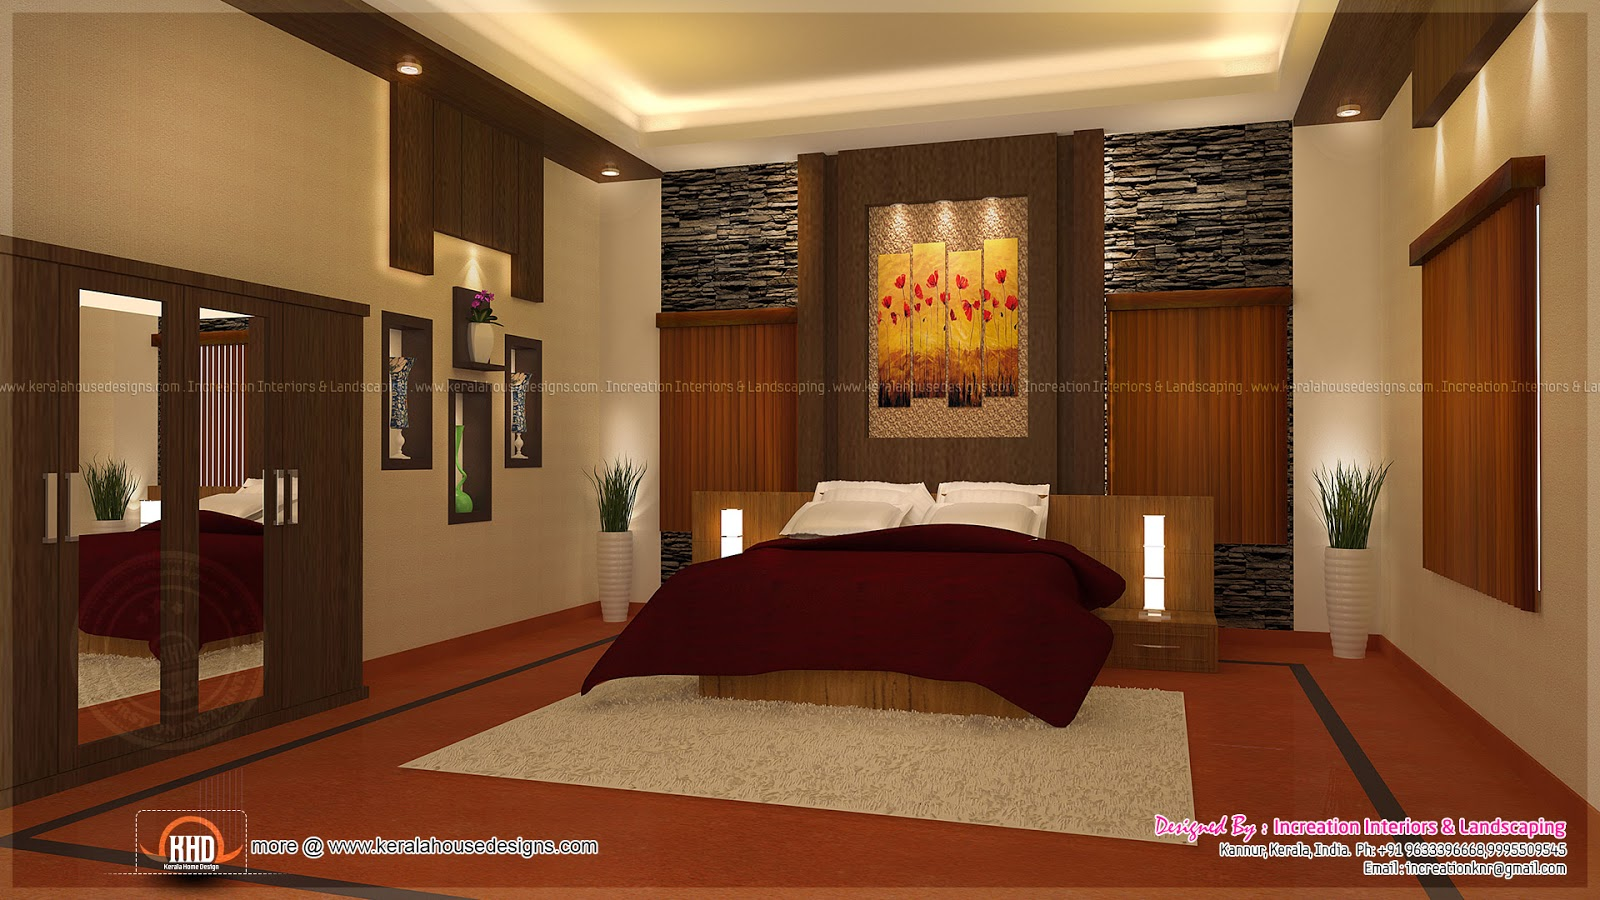 House interior ideas in 3d rendering home kerala plans Home interior design etobicoke